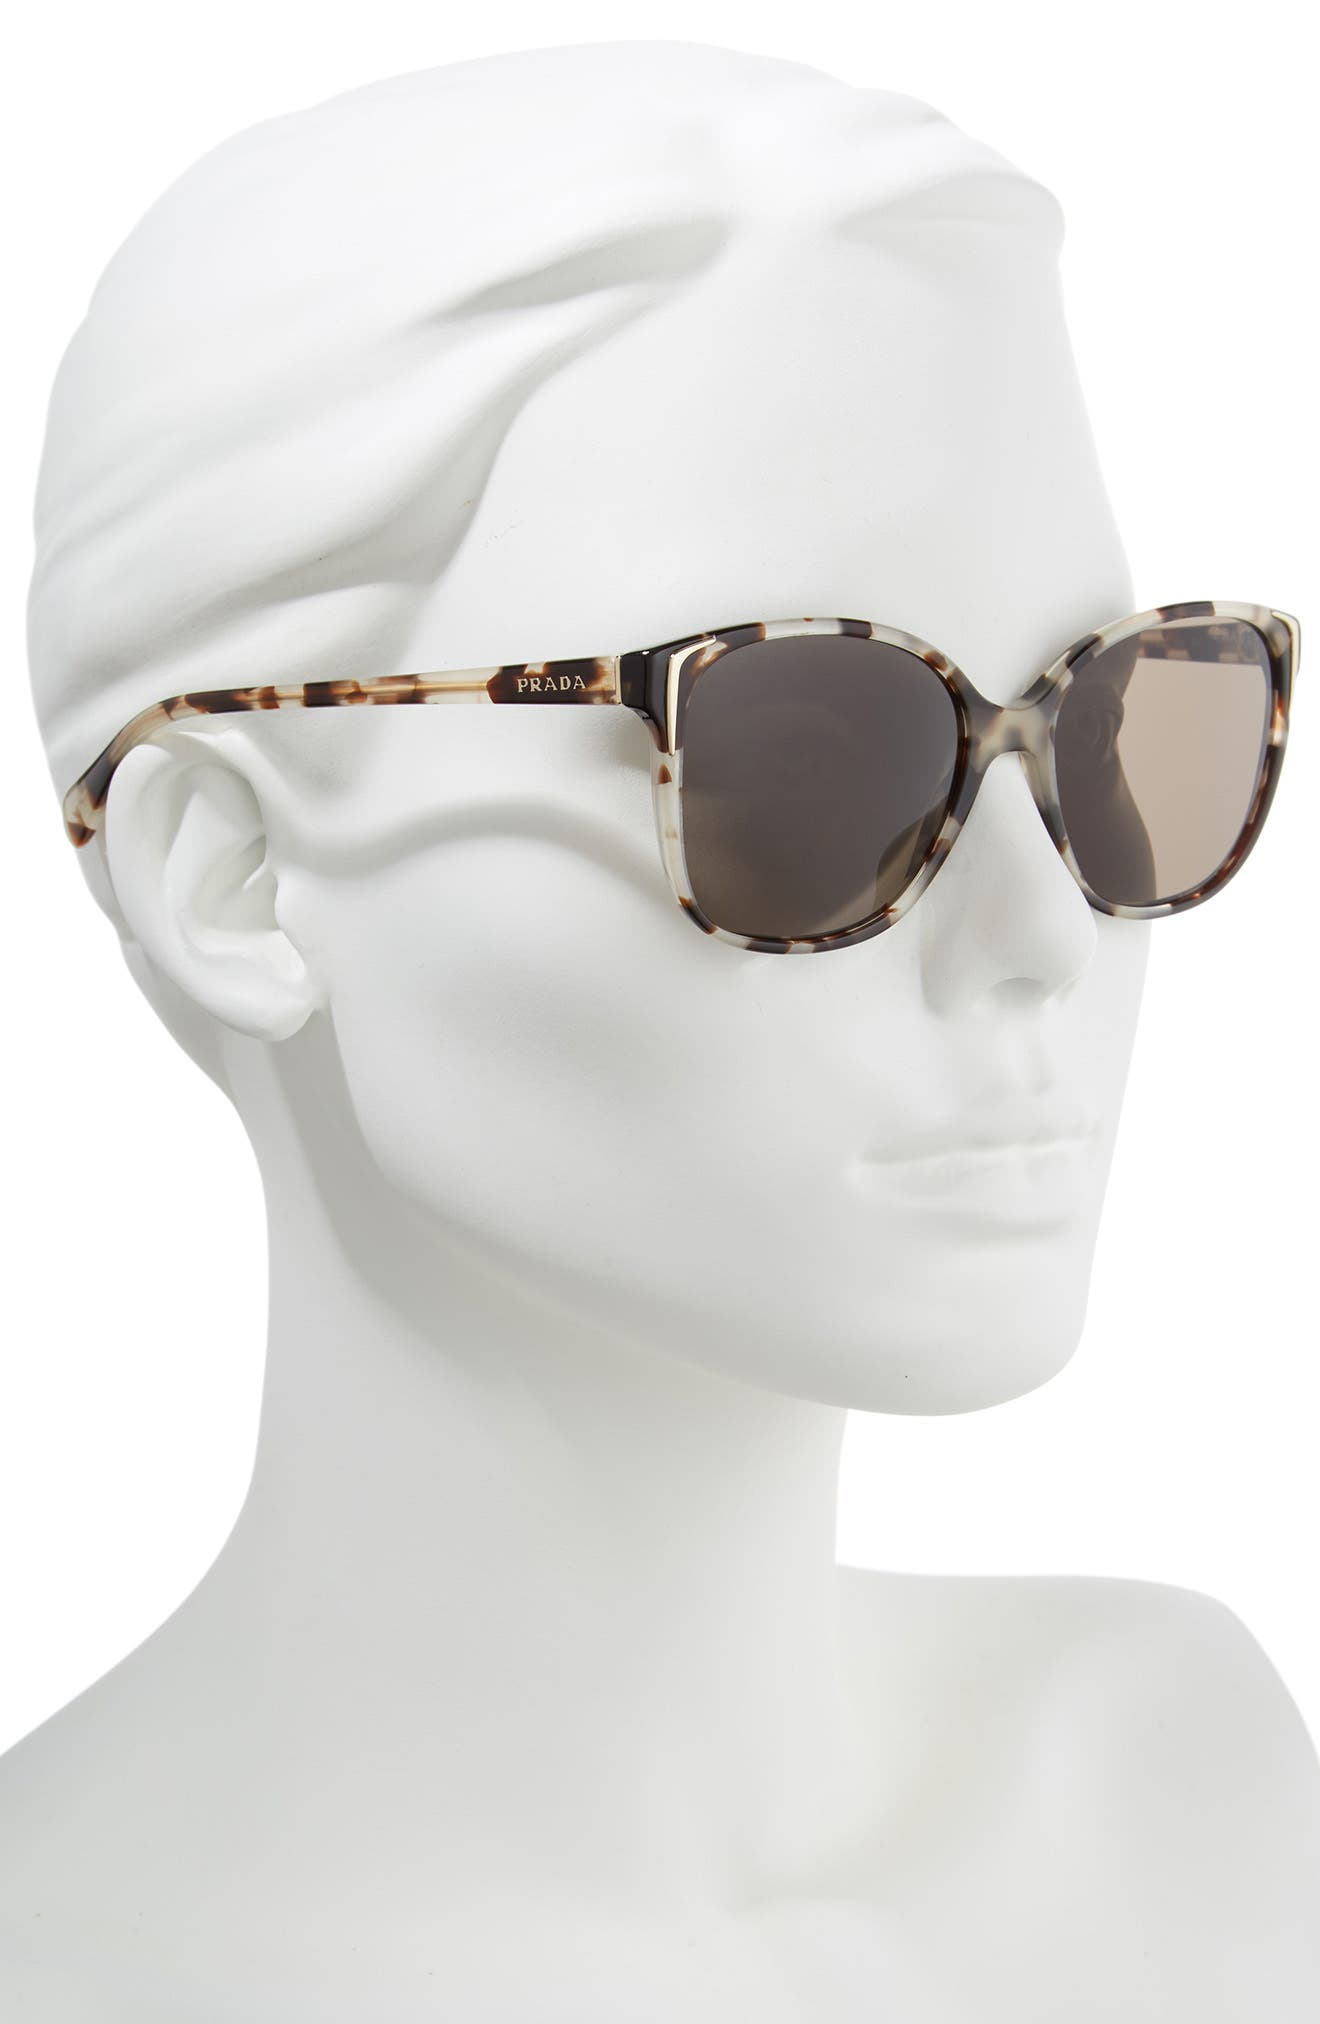 c9763ccfbb5d7 Prada Sunglasses for Women